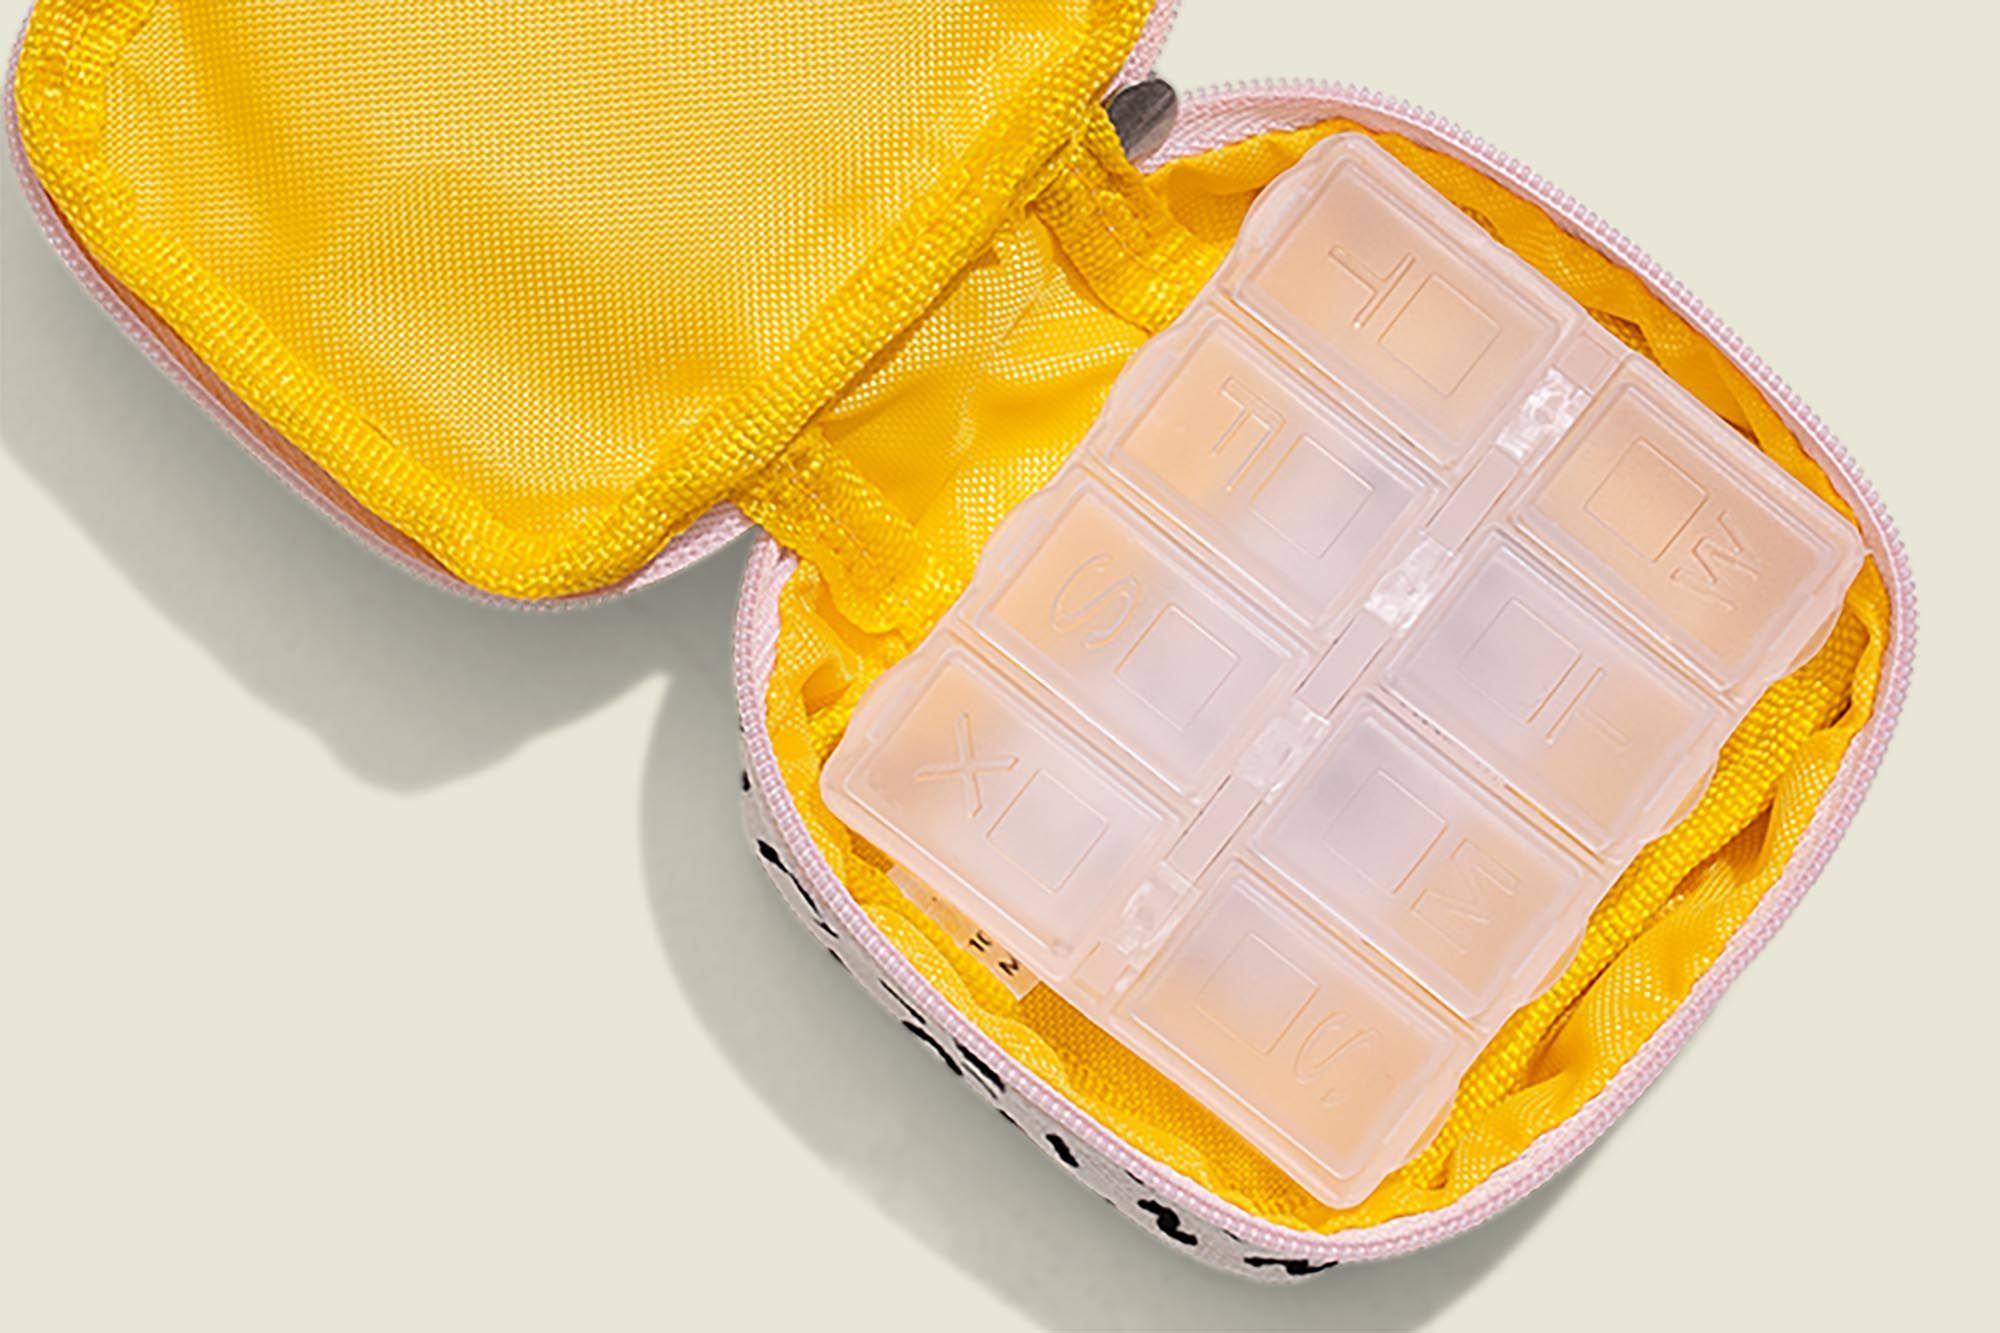 Flat zip pouch with plastic compartments